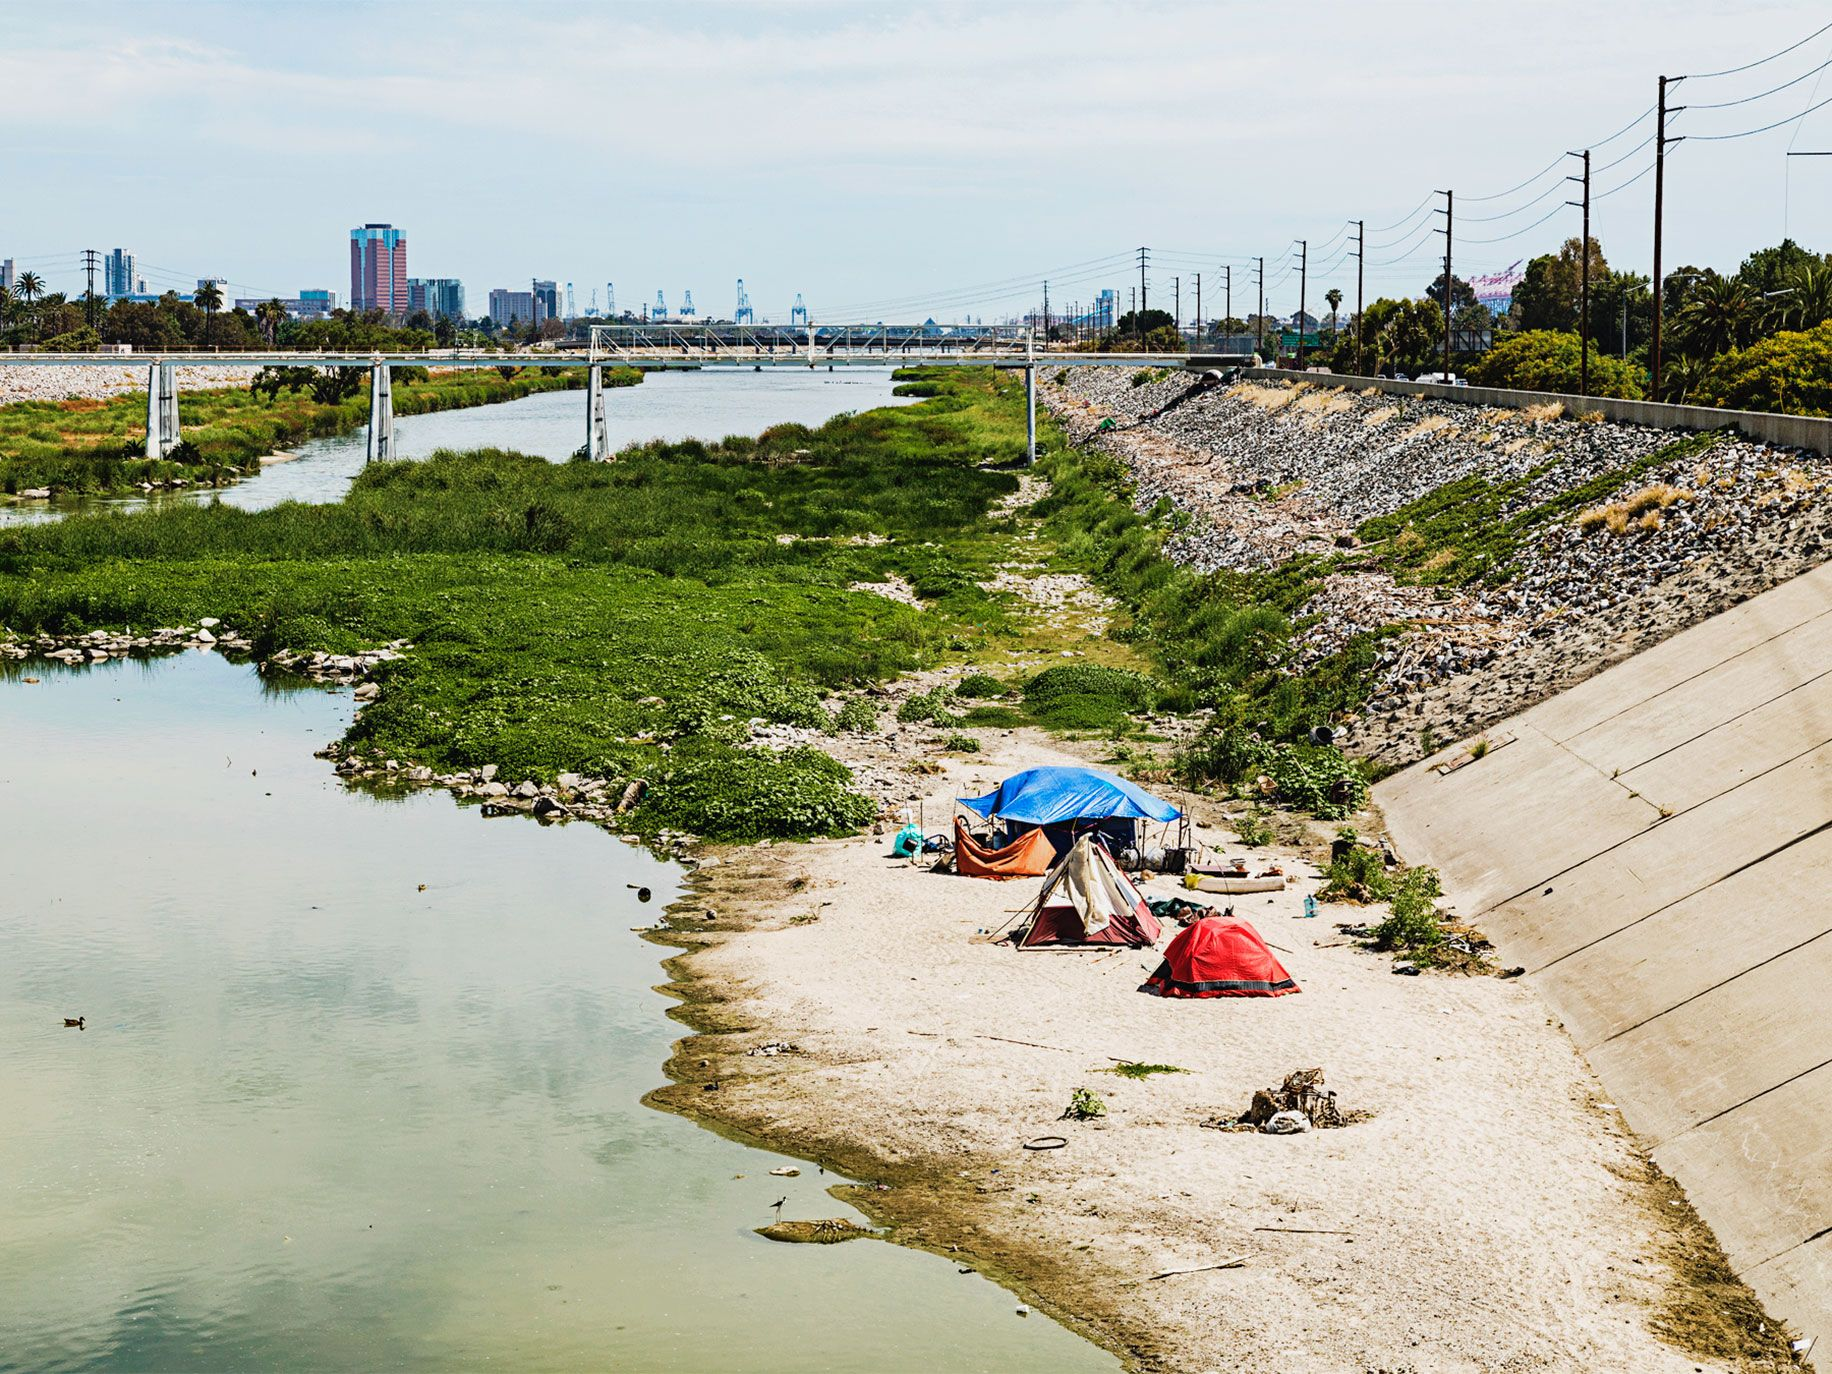 Homeless camp in the Long Beach section of the Los Angeles River.